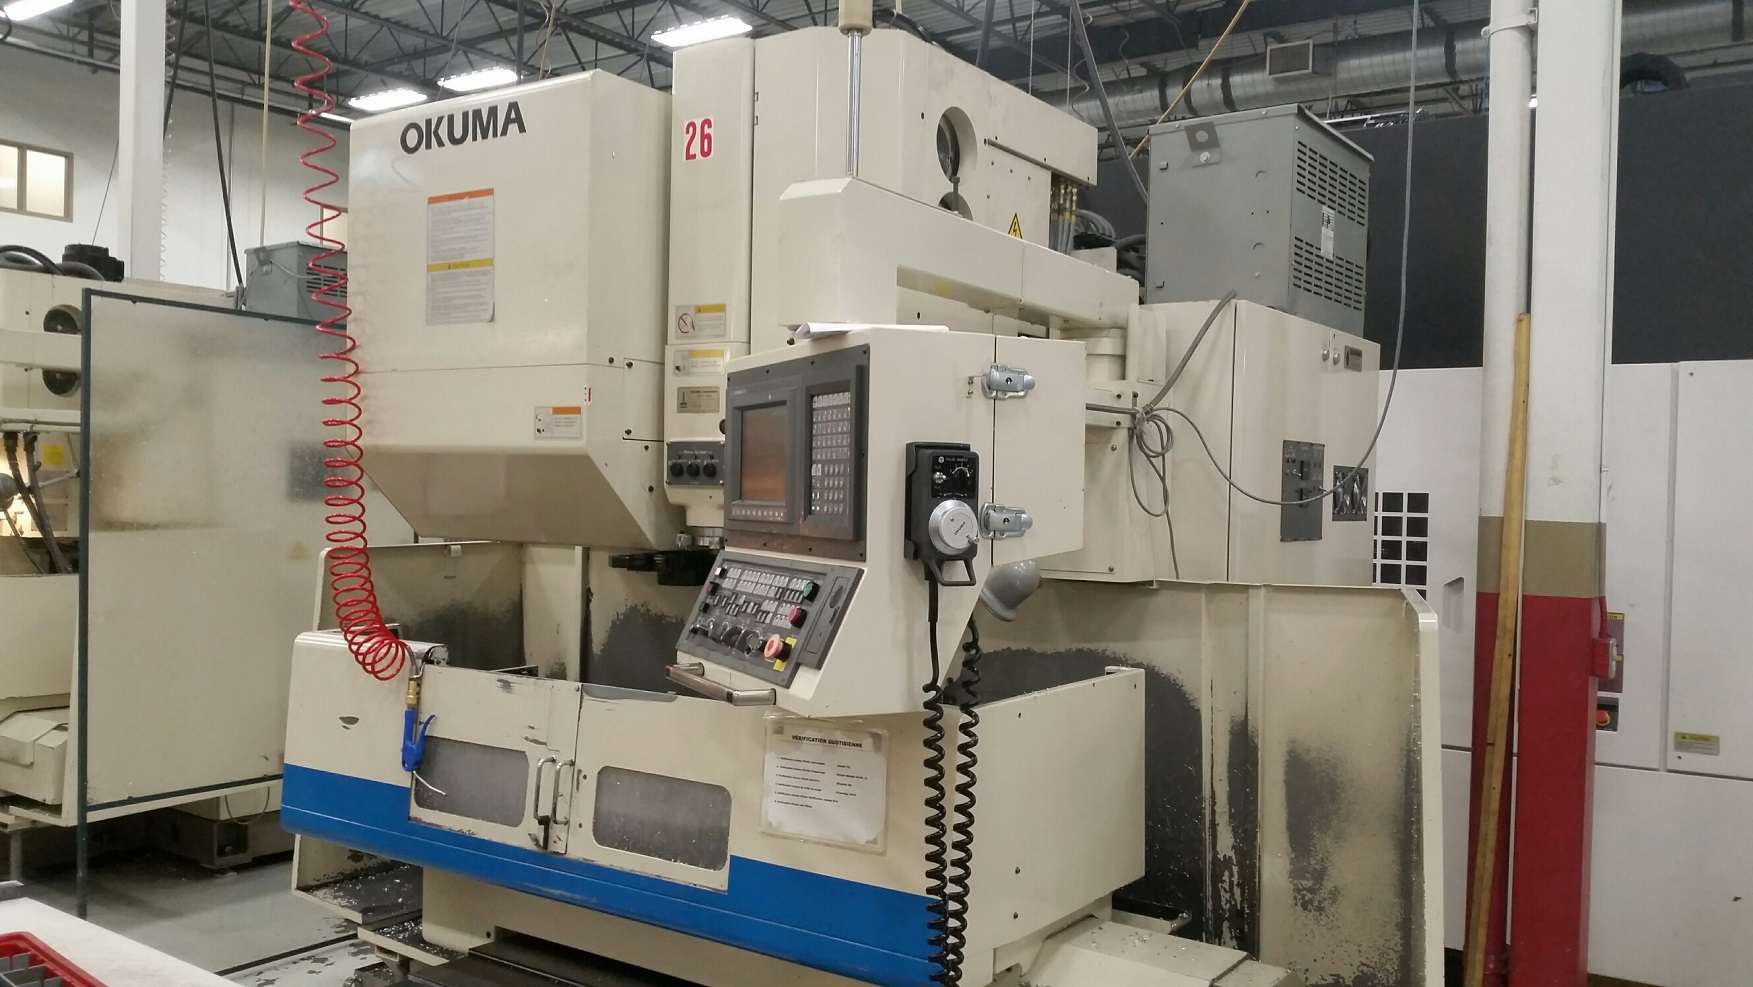 OKUMA MC-40VB CNC VERTICAL MACHINING CENTER WITH 50 TAPER SPINDLE AND 4TH AXIS DRIVE